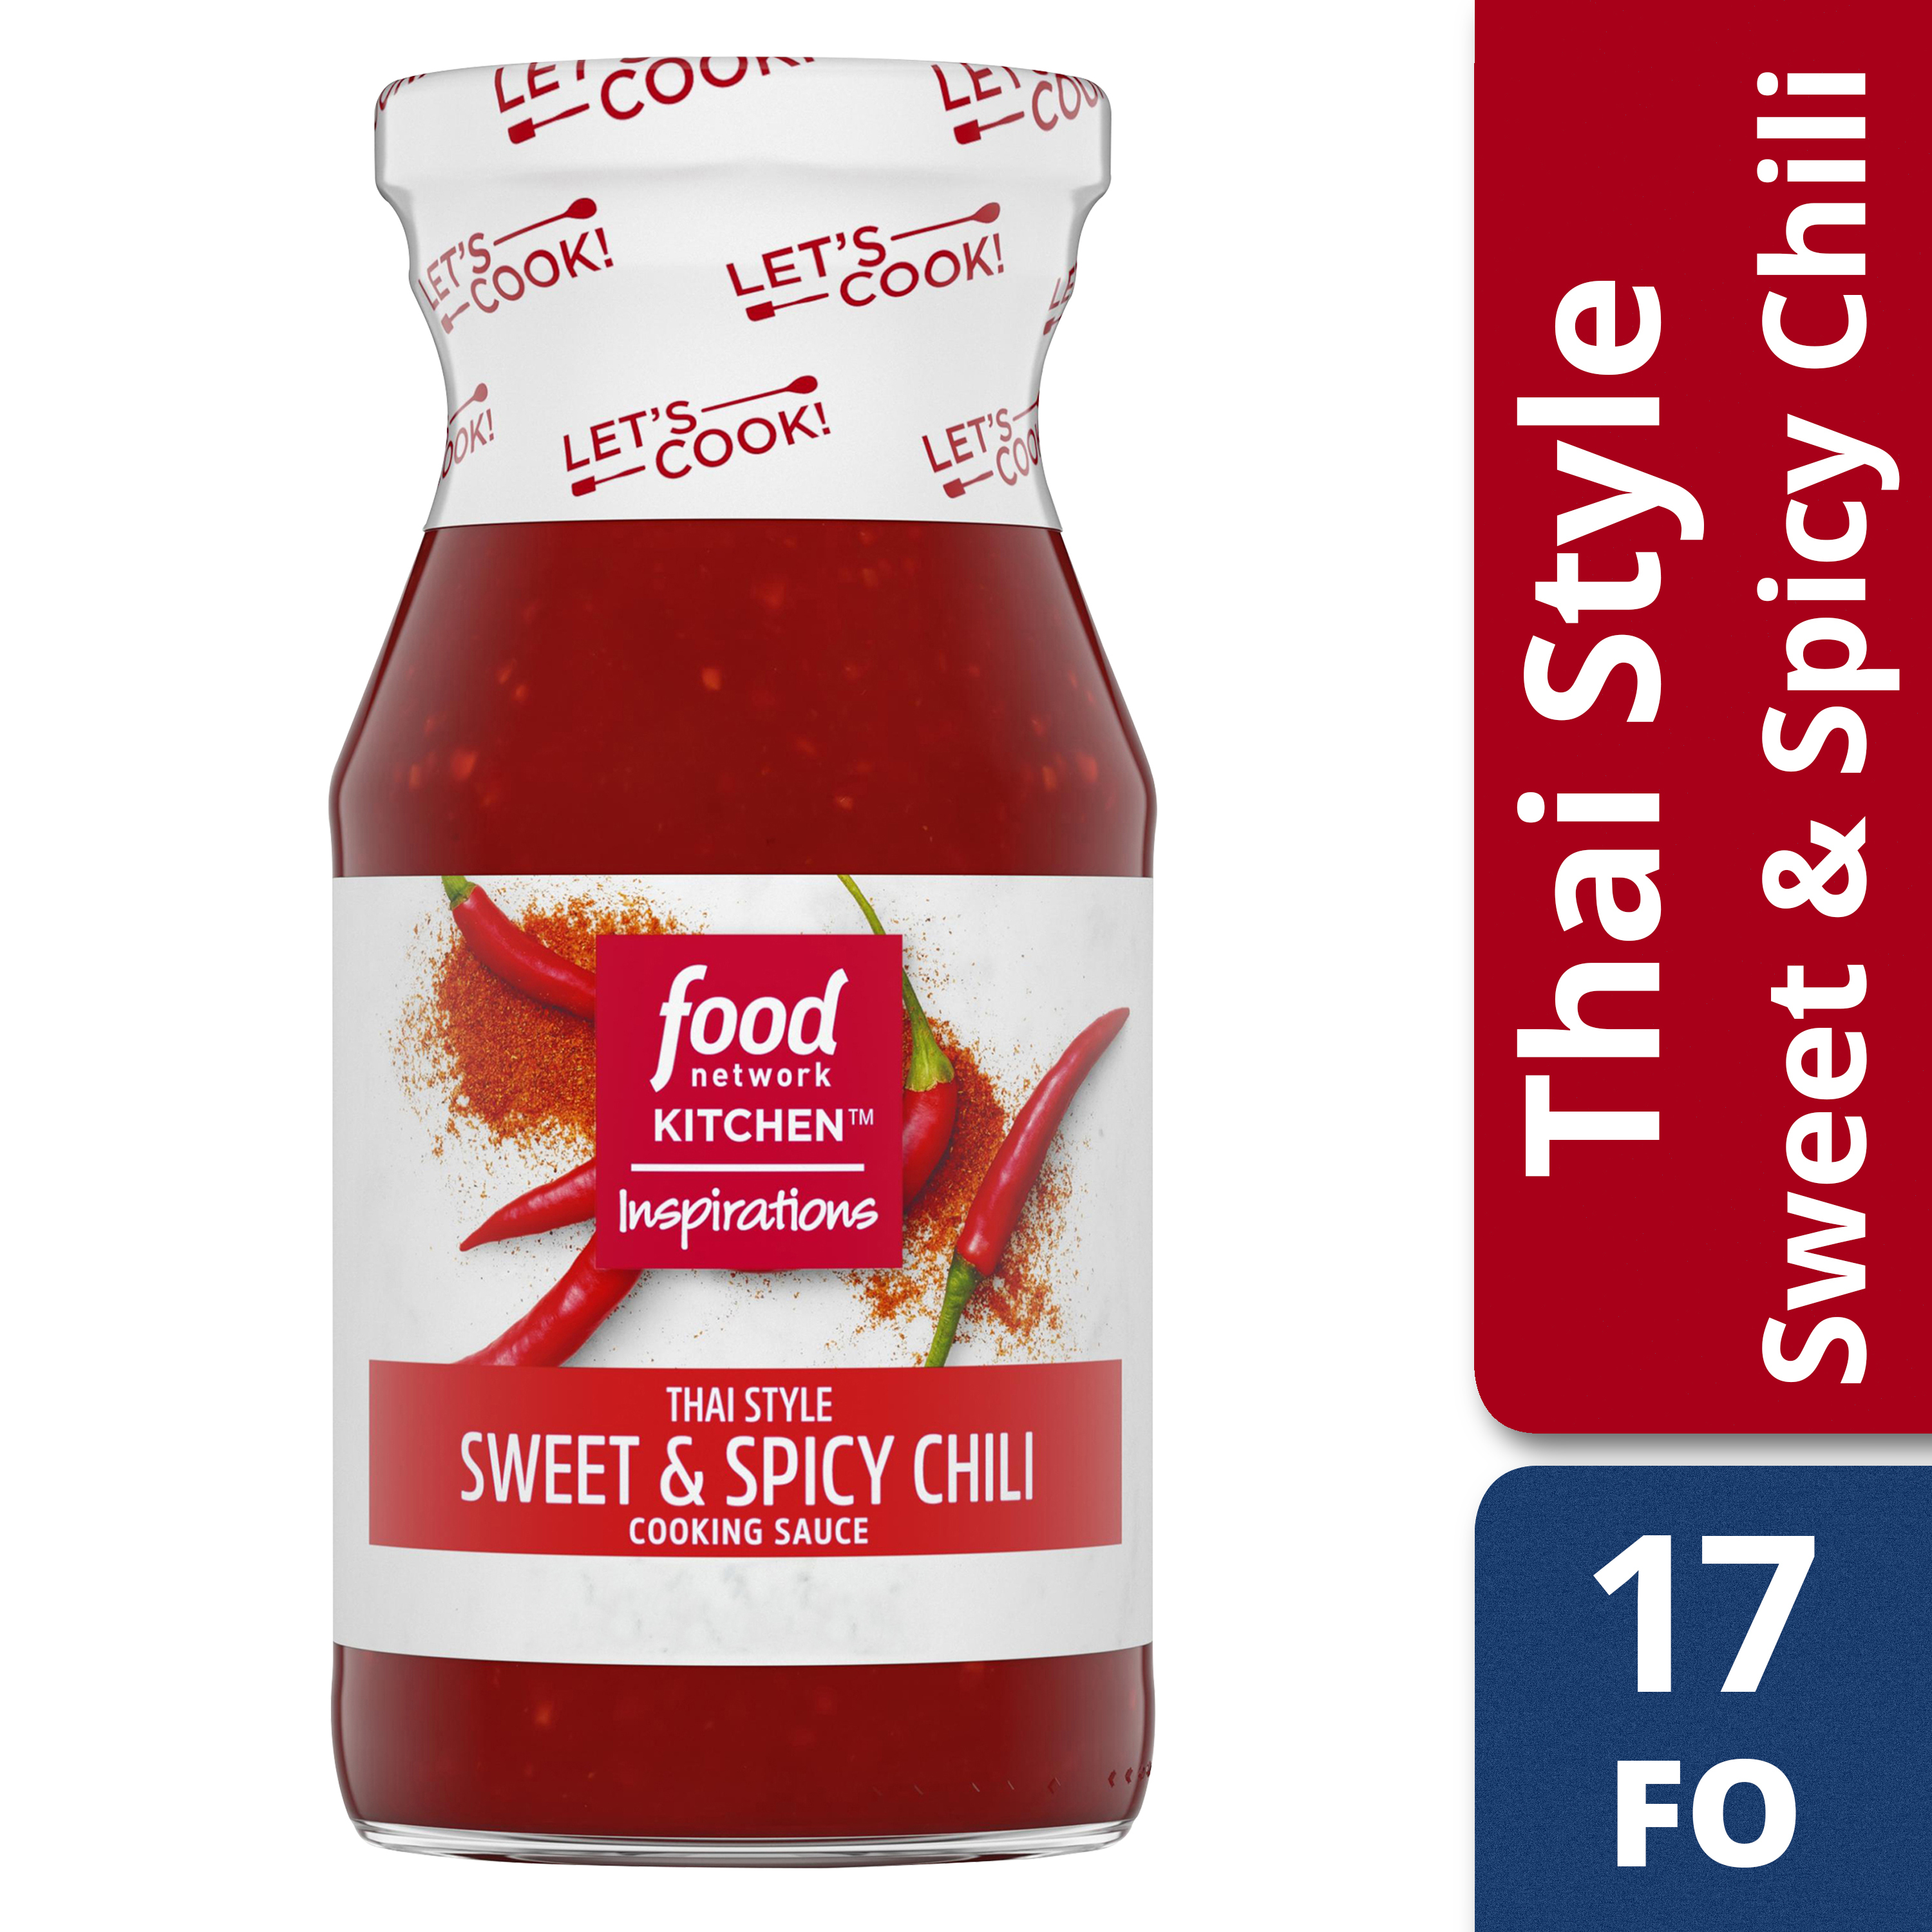 (2 Pack) Food Network Kitchen Inspirations Thai Style Sweet & Spicy Chili Cooking Sauce, 15 oz Bottle